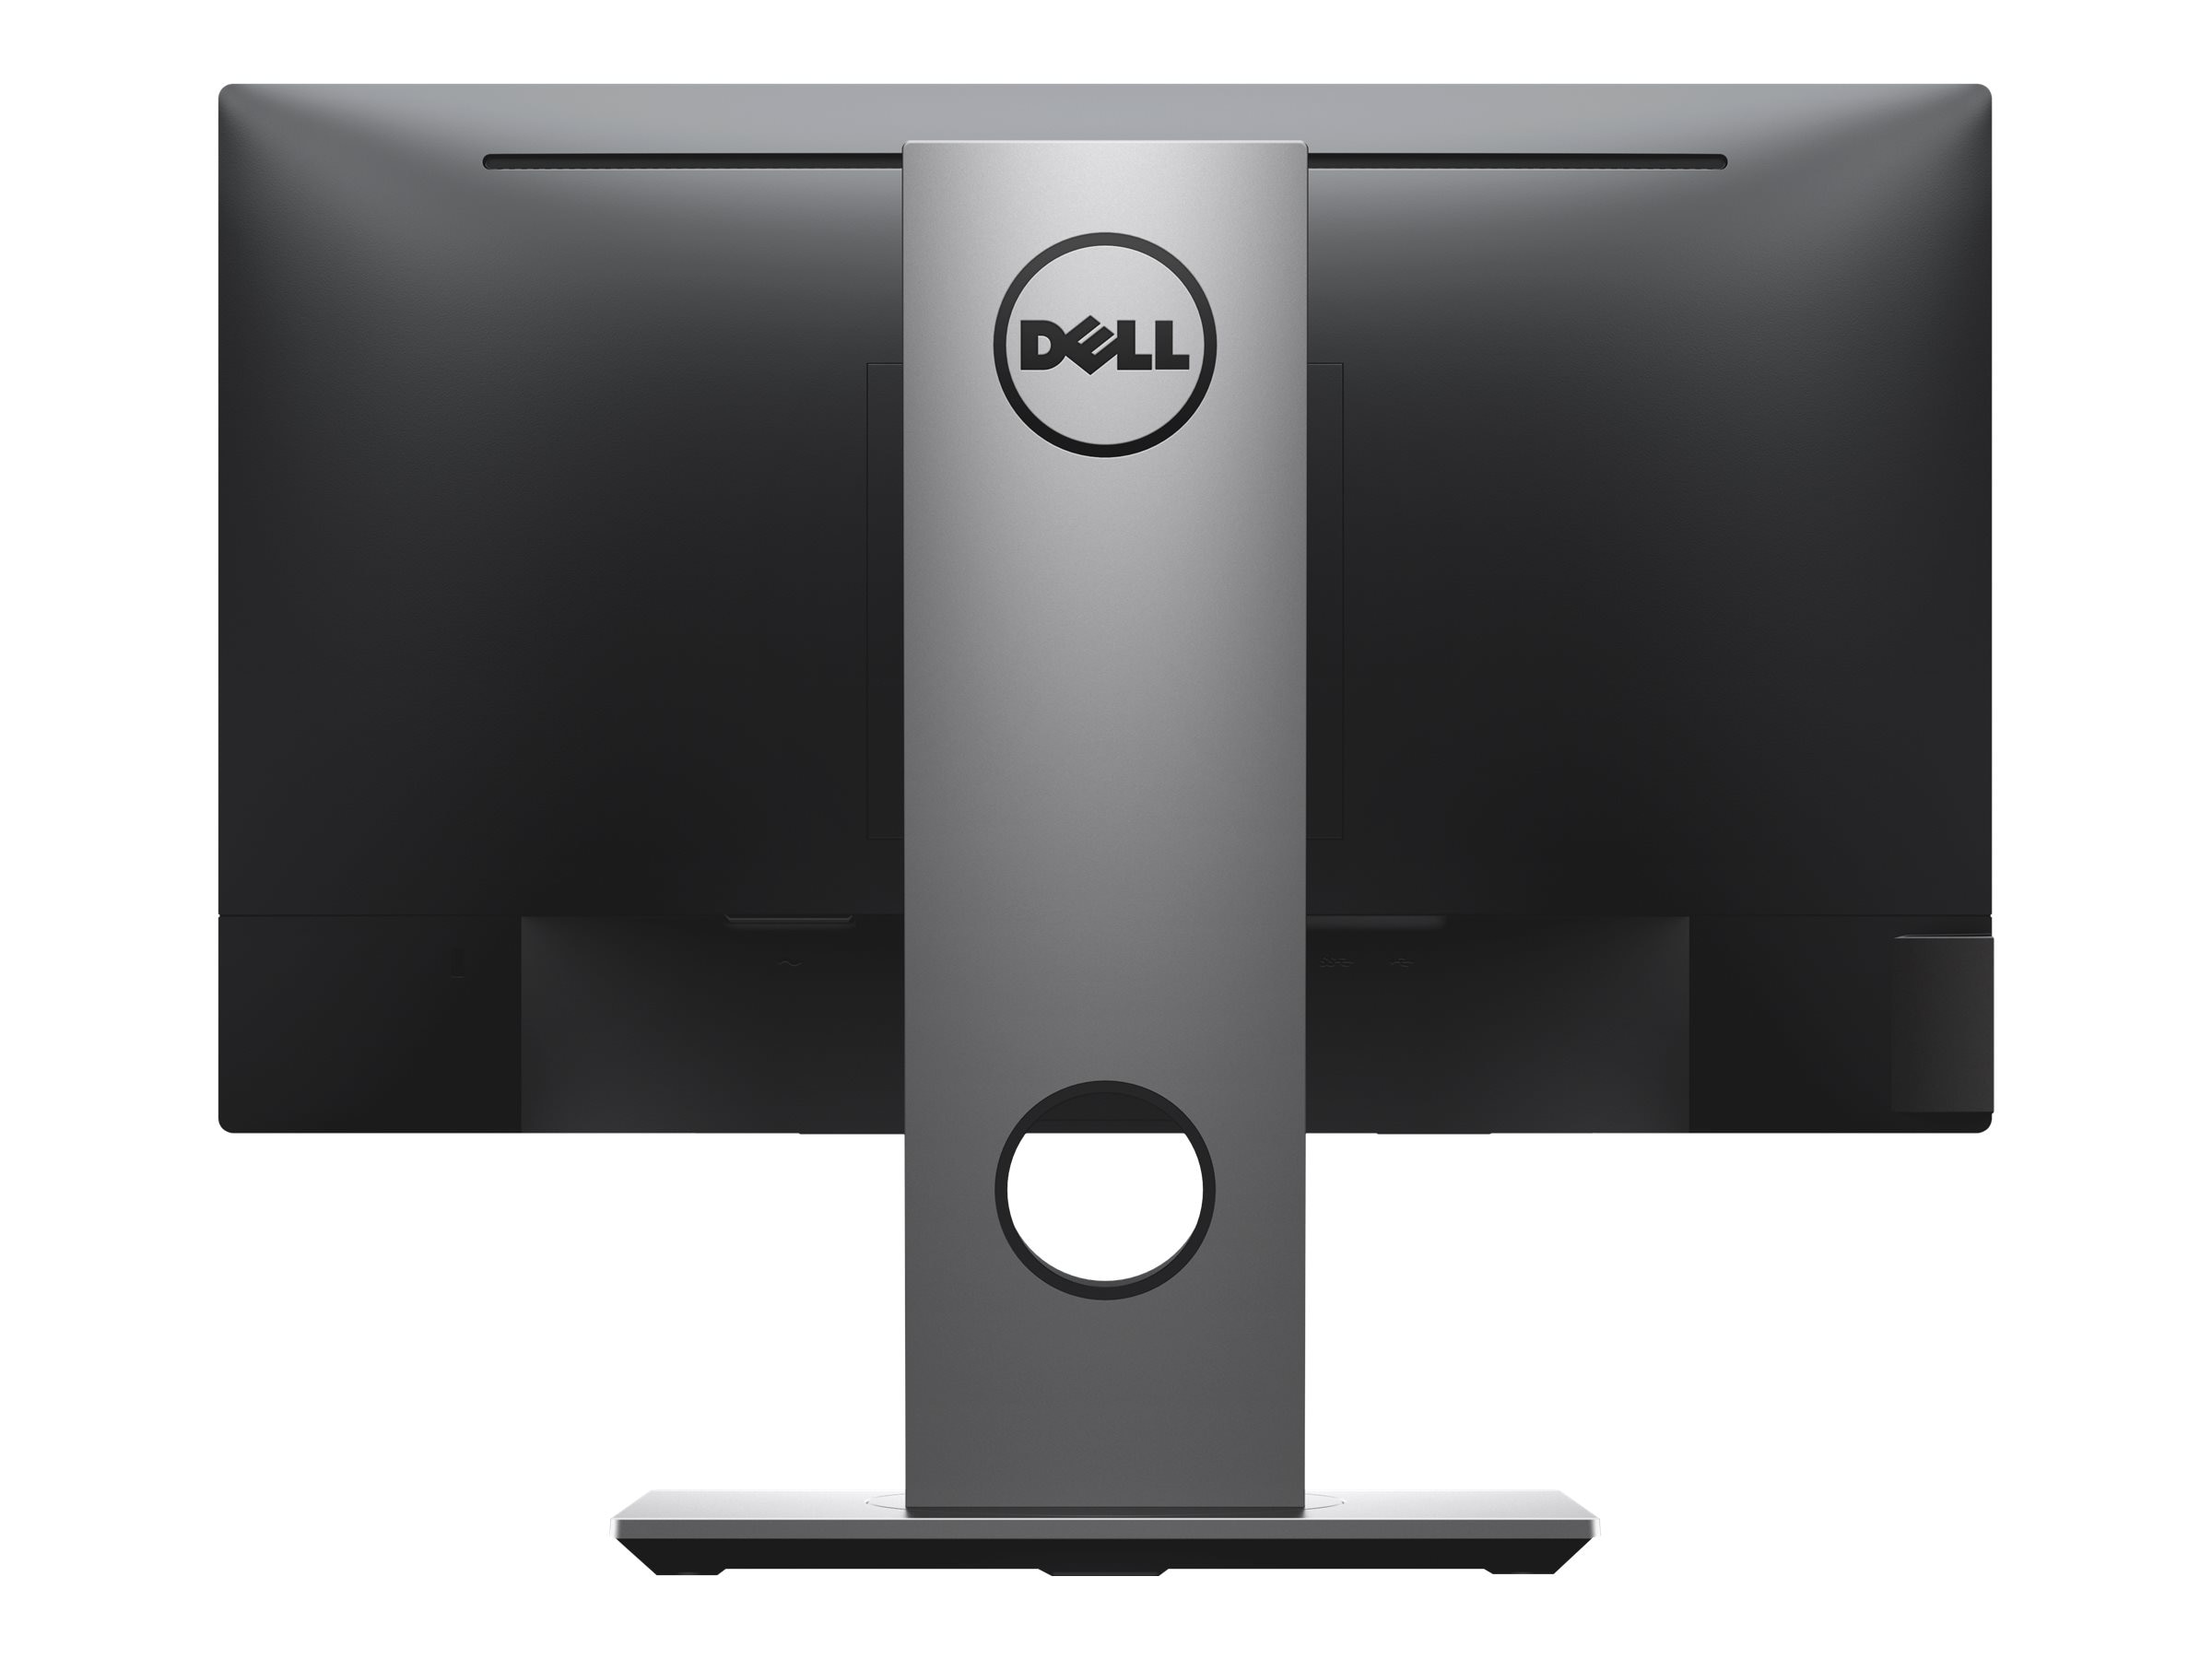 Dell 19.5 P2017H LED-LCD Monitor, Black, P2017H